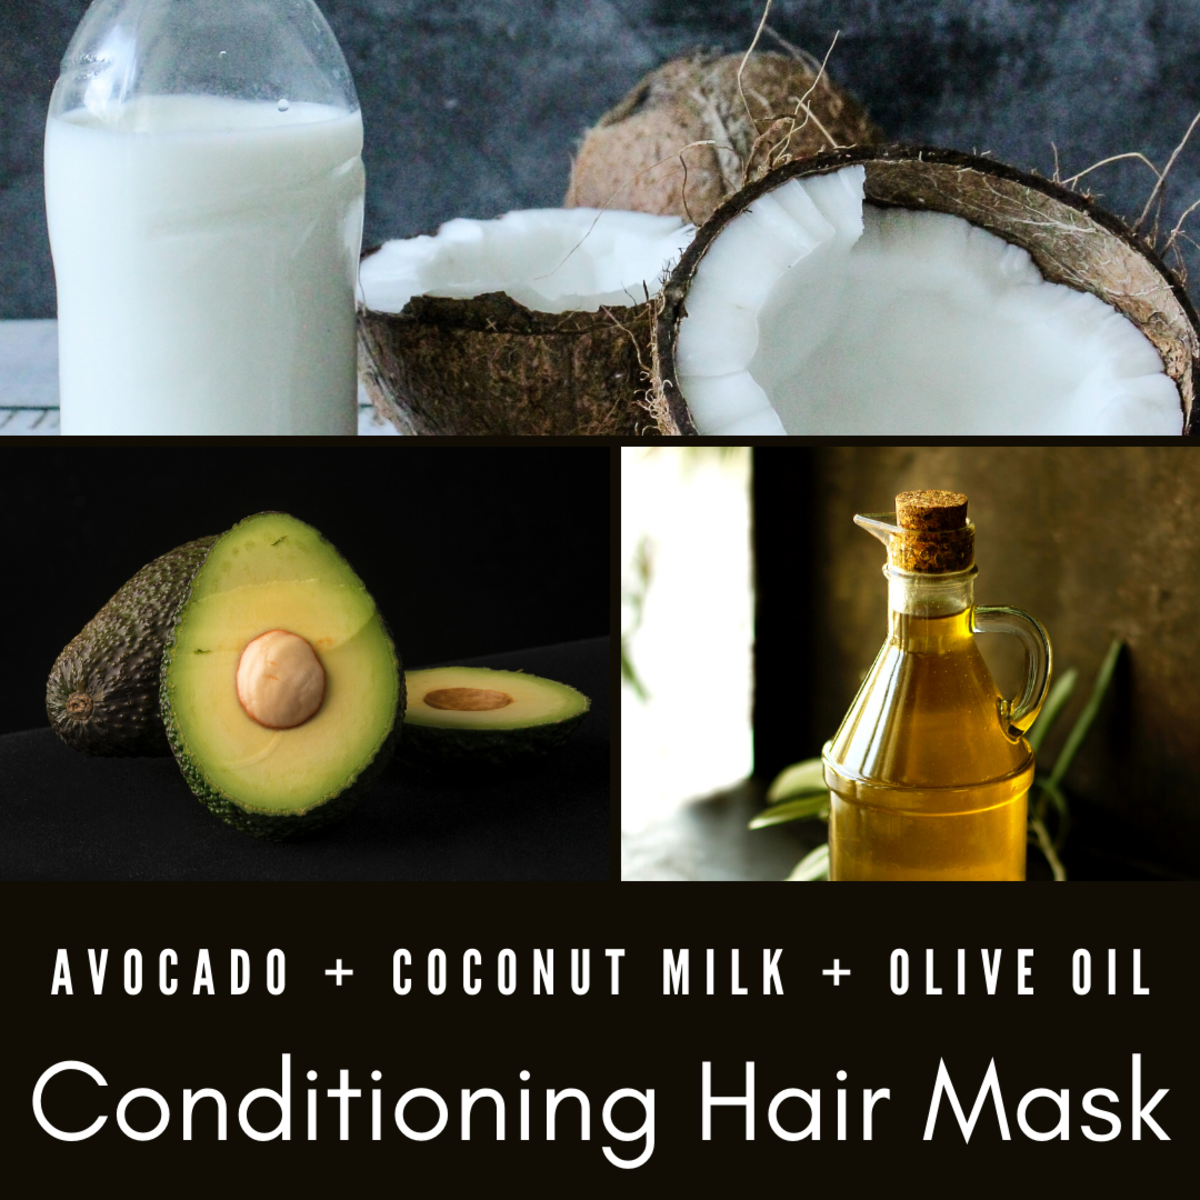 Combine avocado, almond oil, and coconut milk for a hair mask that'll help keep your locks smooth.